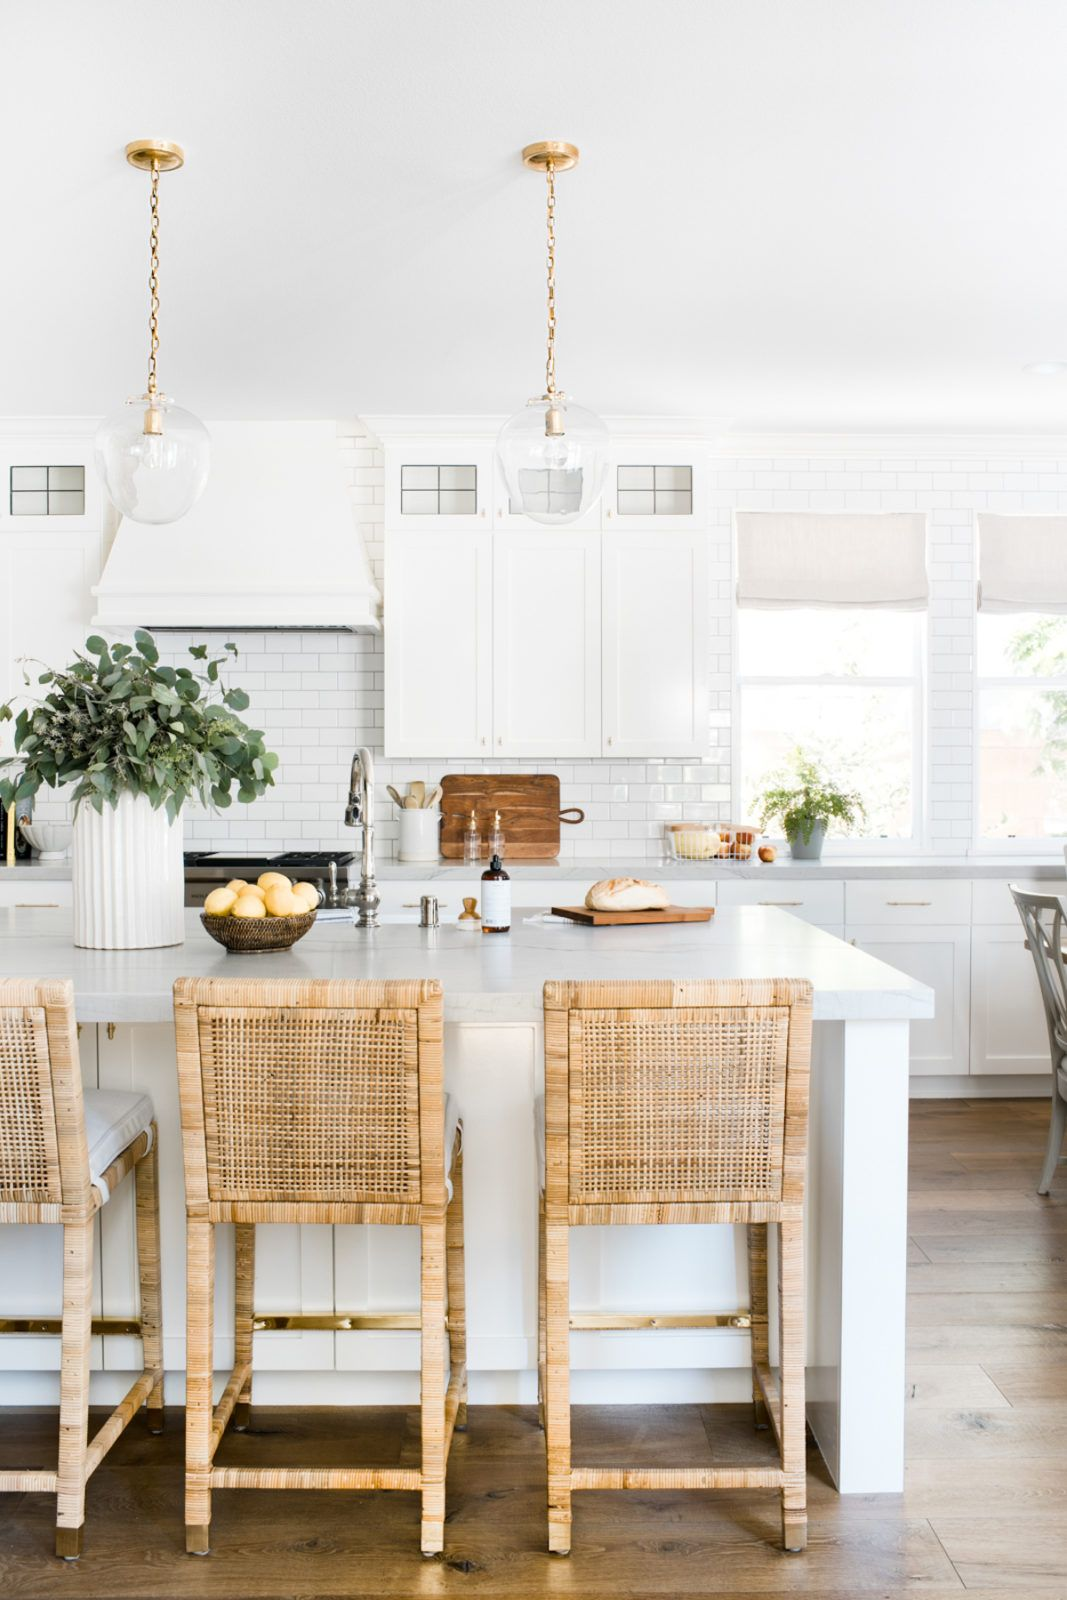 This Irvine Home Gets A Fresh Update With Transitional California Style Haven Kitchen Inspiration Design Kitchen Inspirations Kitchen Design